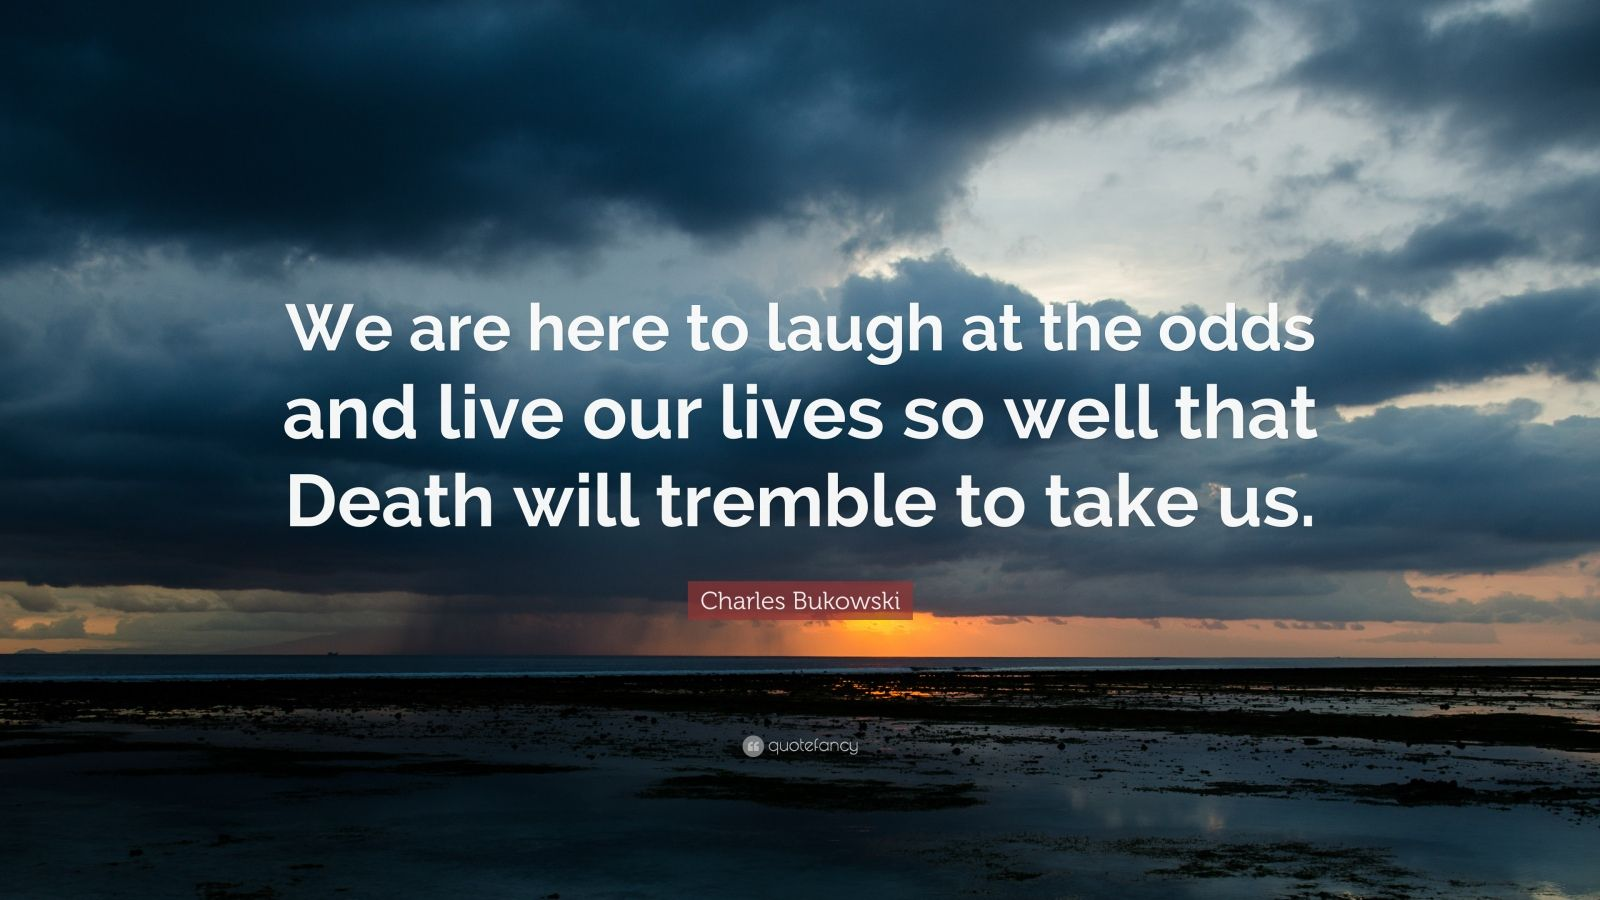 "Quotes About Laughing: ""We are here to laugh at the odds and live our lives so well that Death will tremble to take us."" — Charles Bukowski"